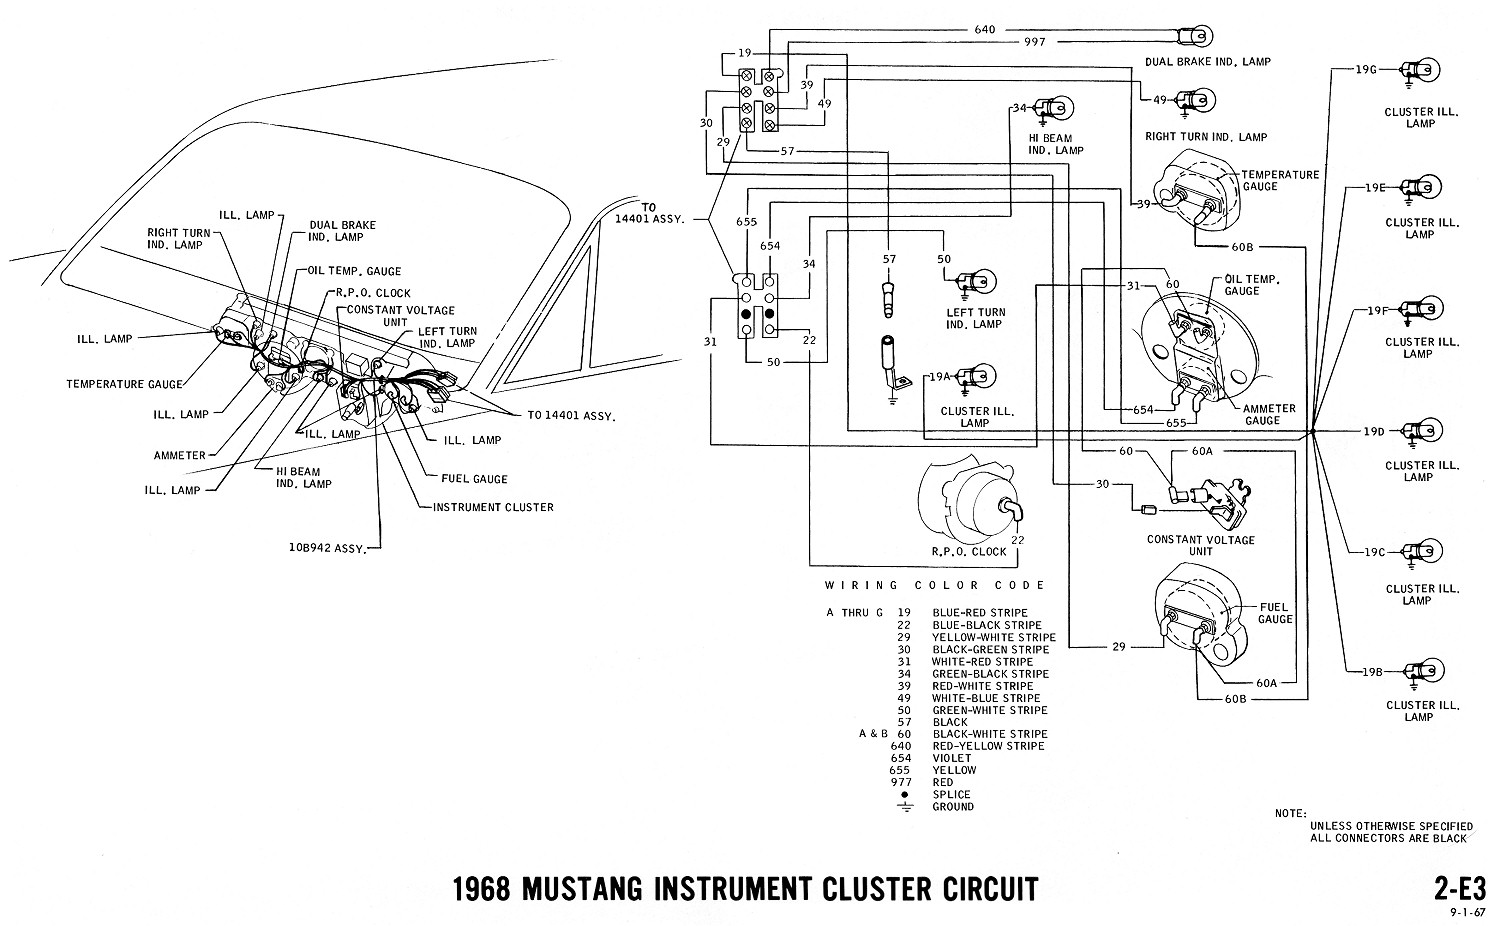 1968 bel air wiper wiring diagram free picture 57 bel air horn wiring diagram